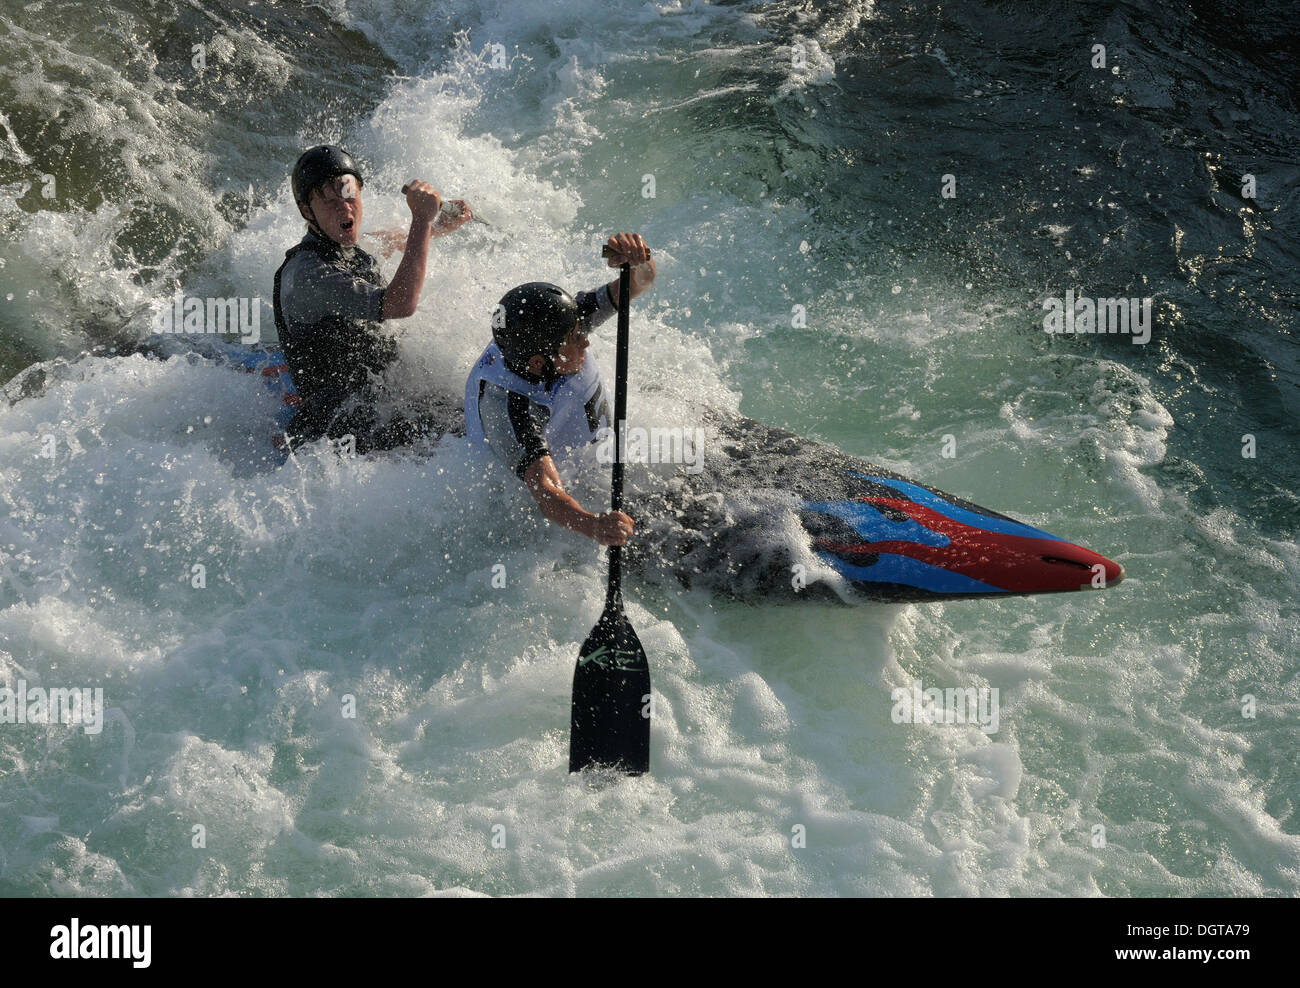 Whitewater kayaking - Stock Image